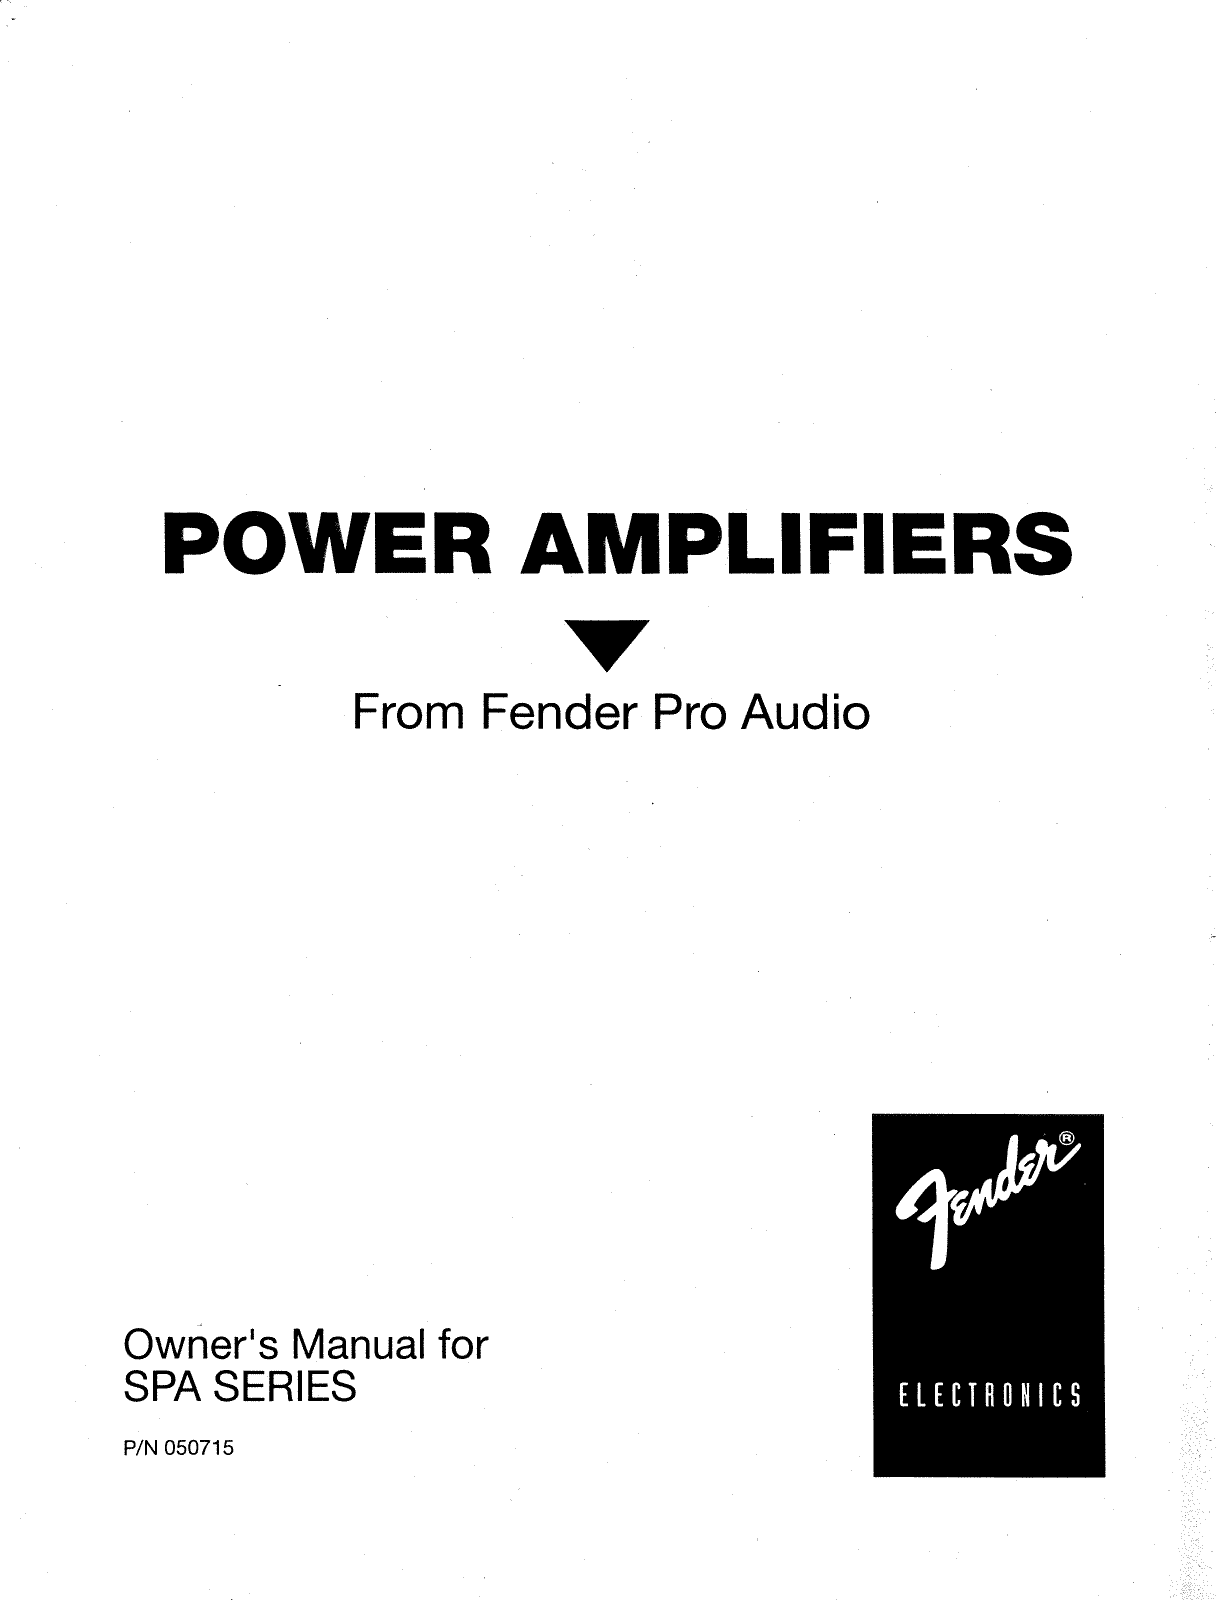 Fender SPA 7500 Power Amplifiers Manual